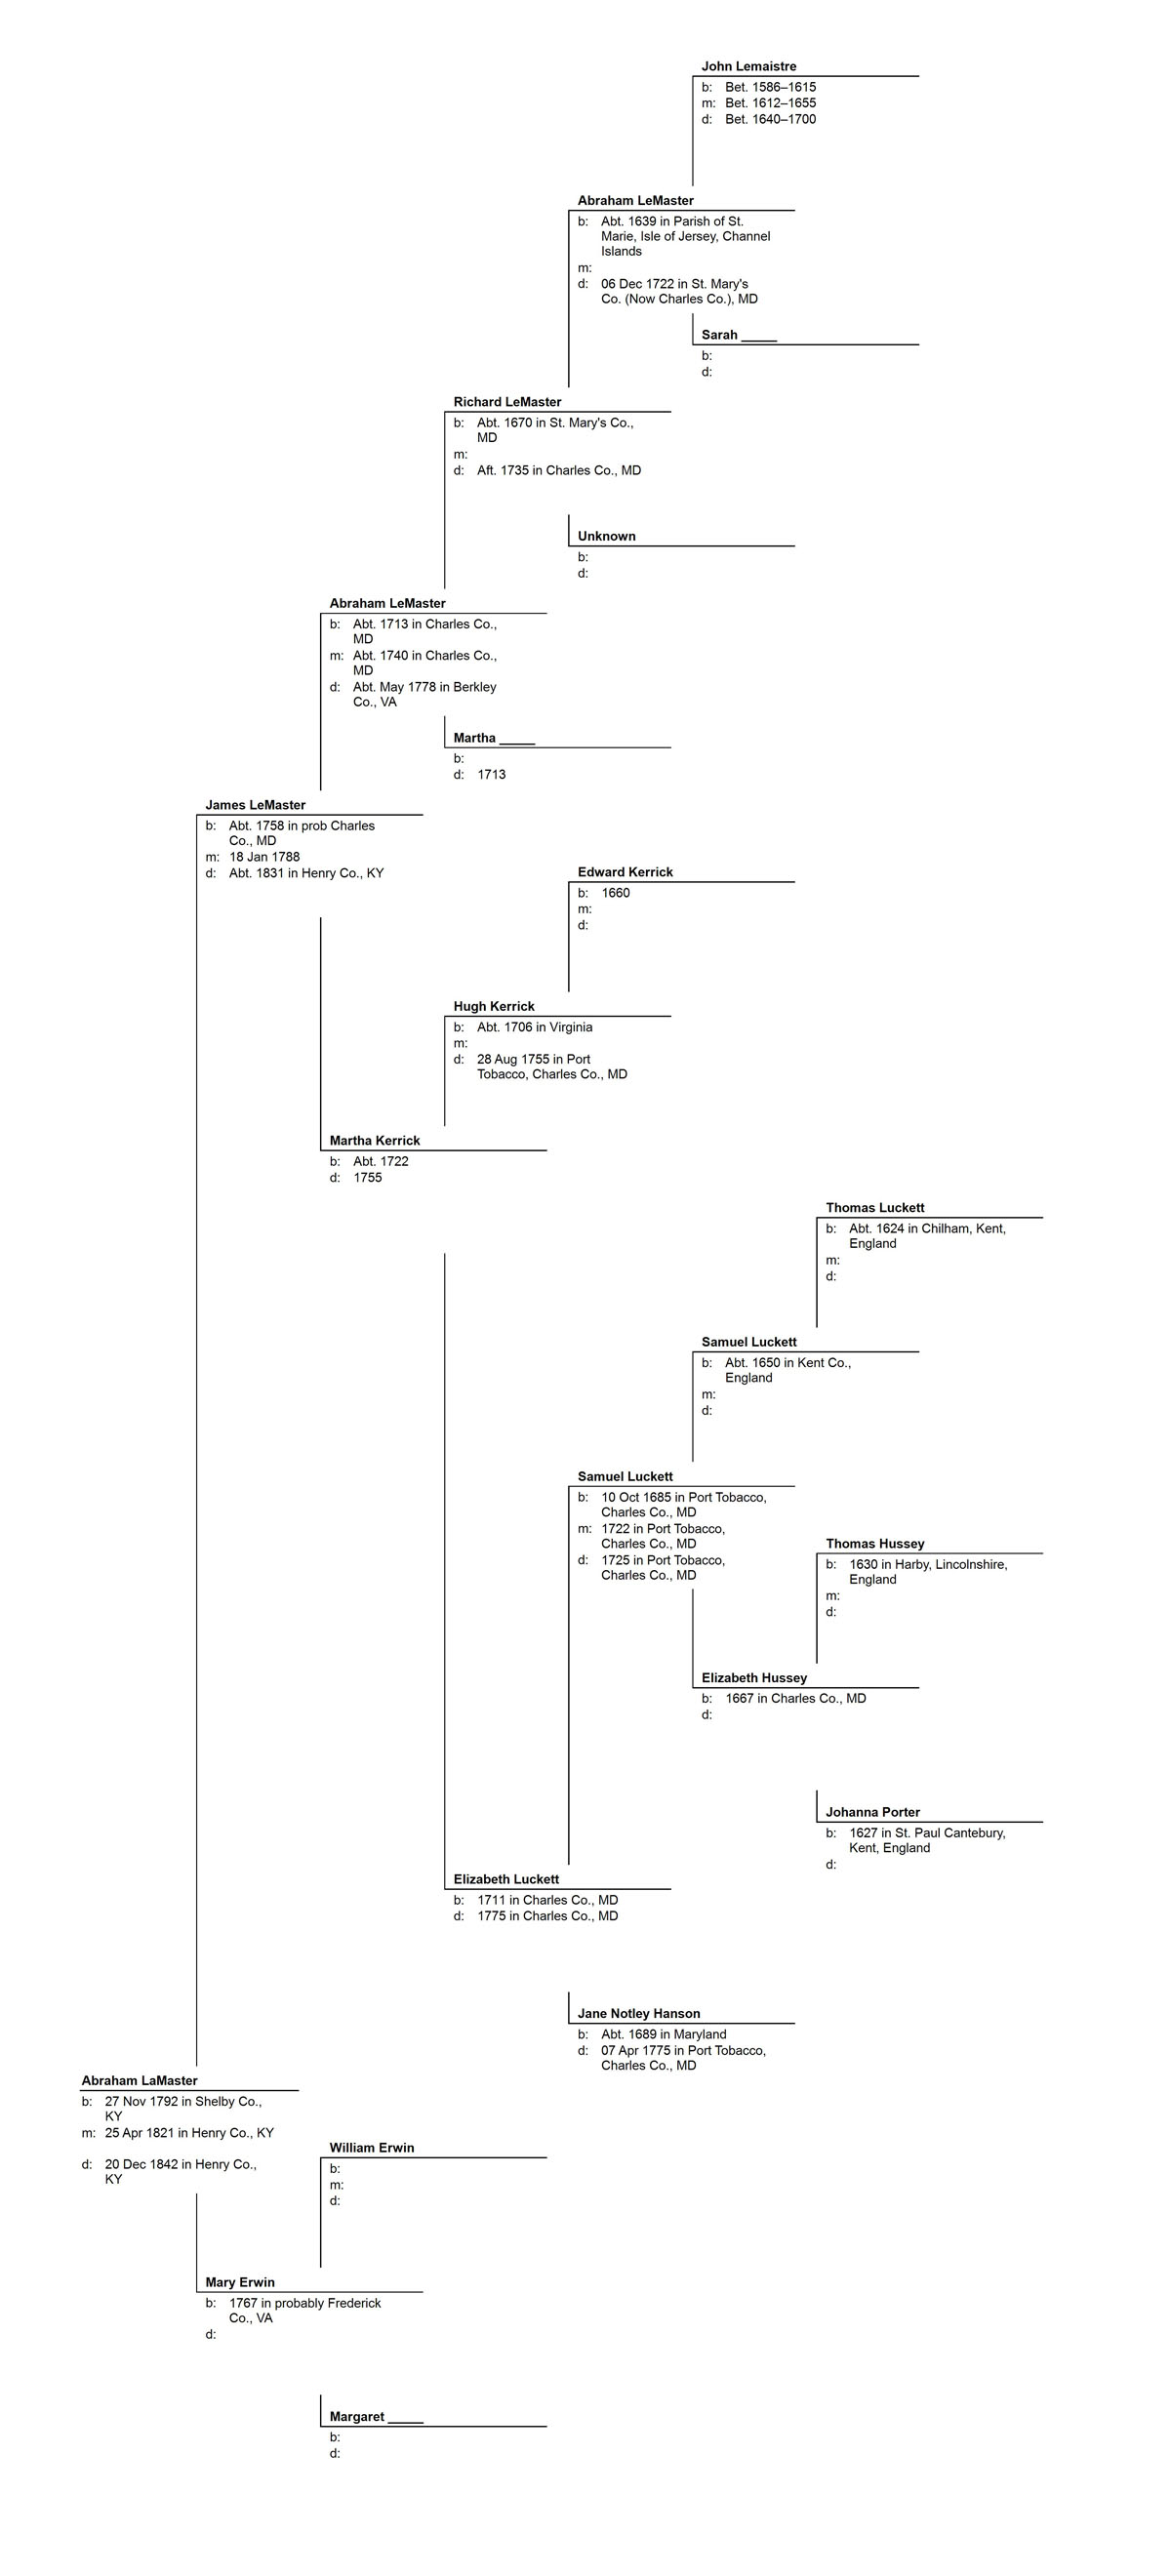 Pedigree Chart for Abraham LaMaster1